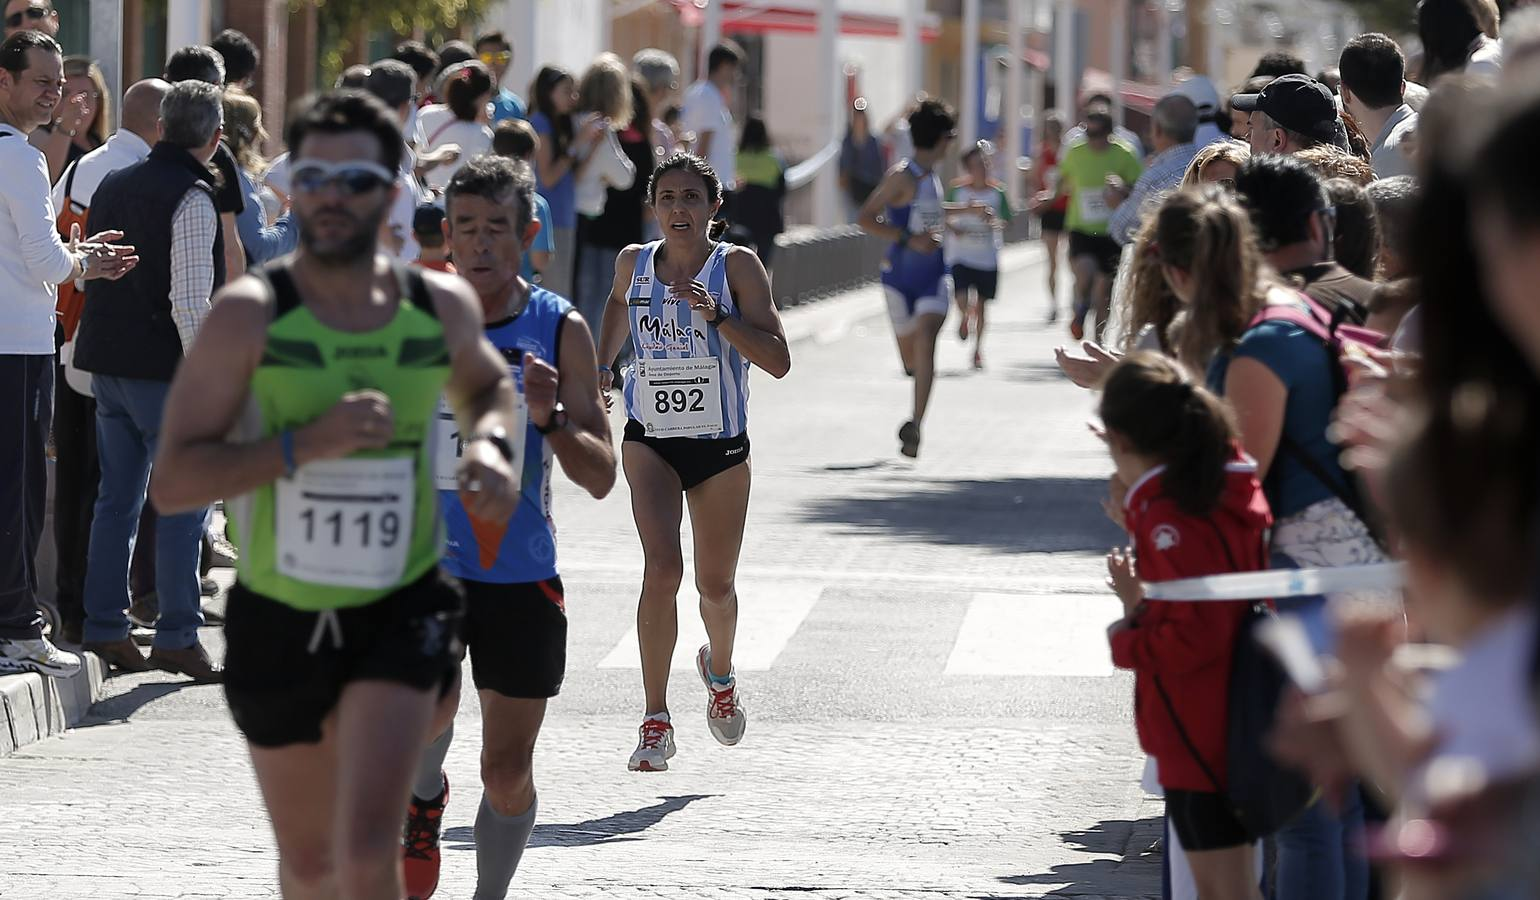 Fotos de la carrera popular de El Palo